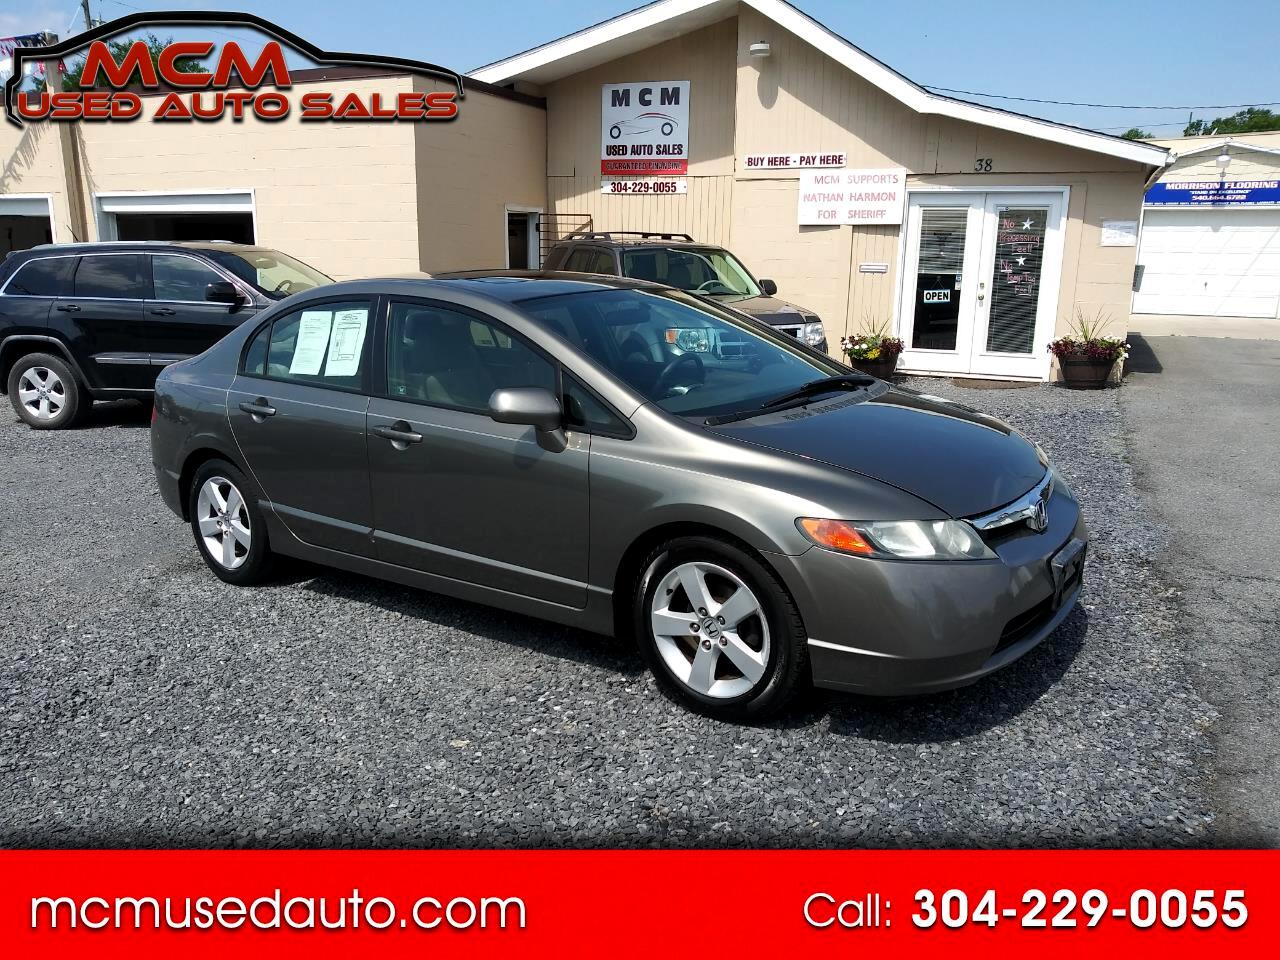 Honda Civic EX Sedan with Navigation 2006